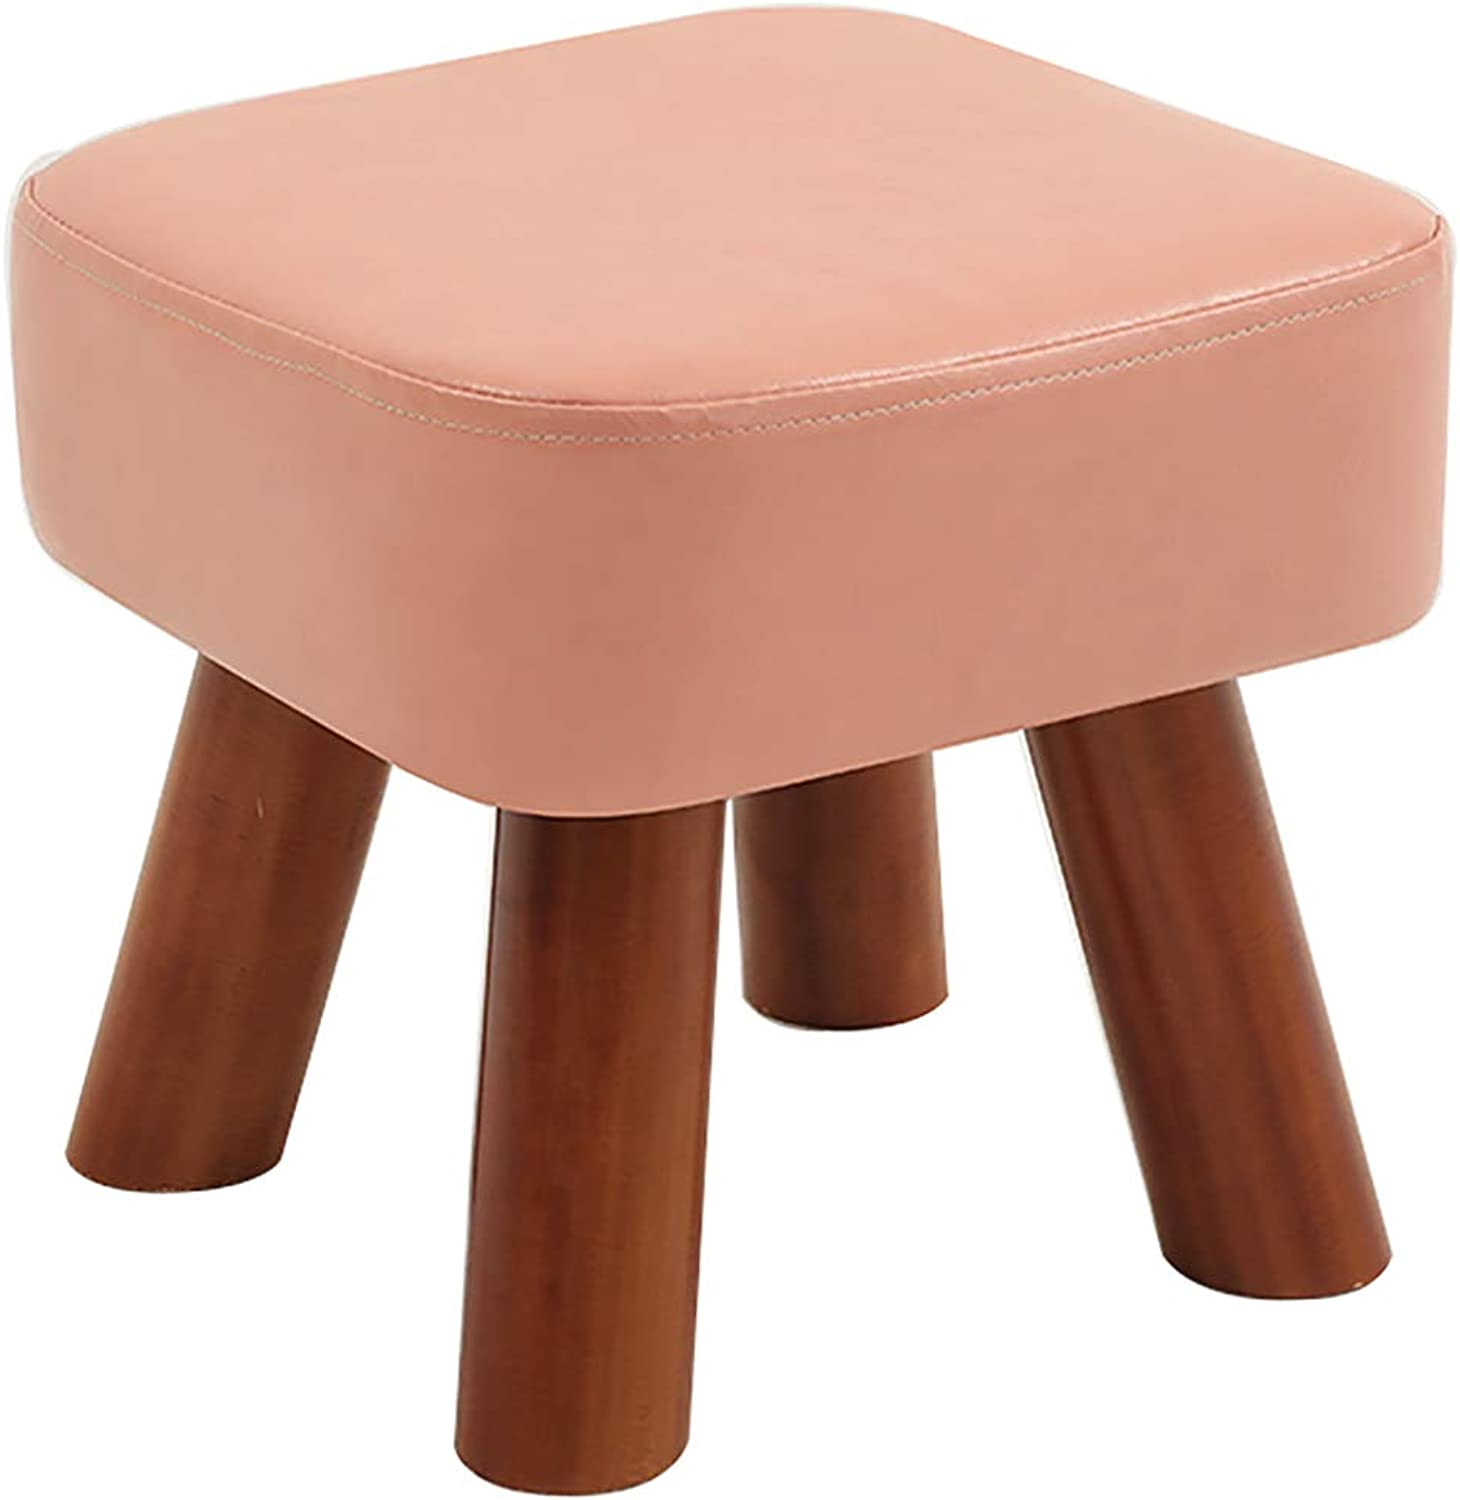 CAIJUN Footstool Comfortable Indoor Solid Wood Frame Multifunction Portable, 5 colors, 2 Sizes (color   Pink, Size   28x28x25cm)